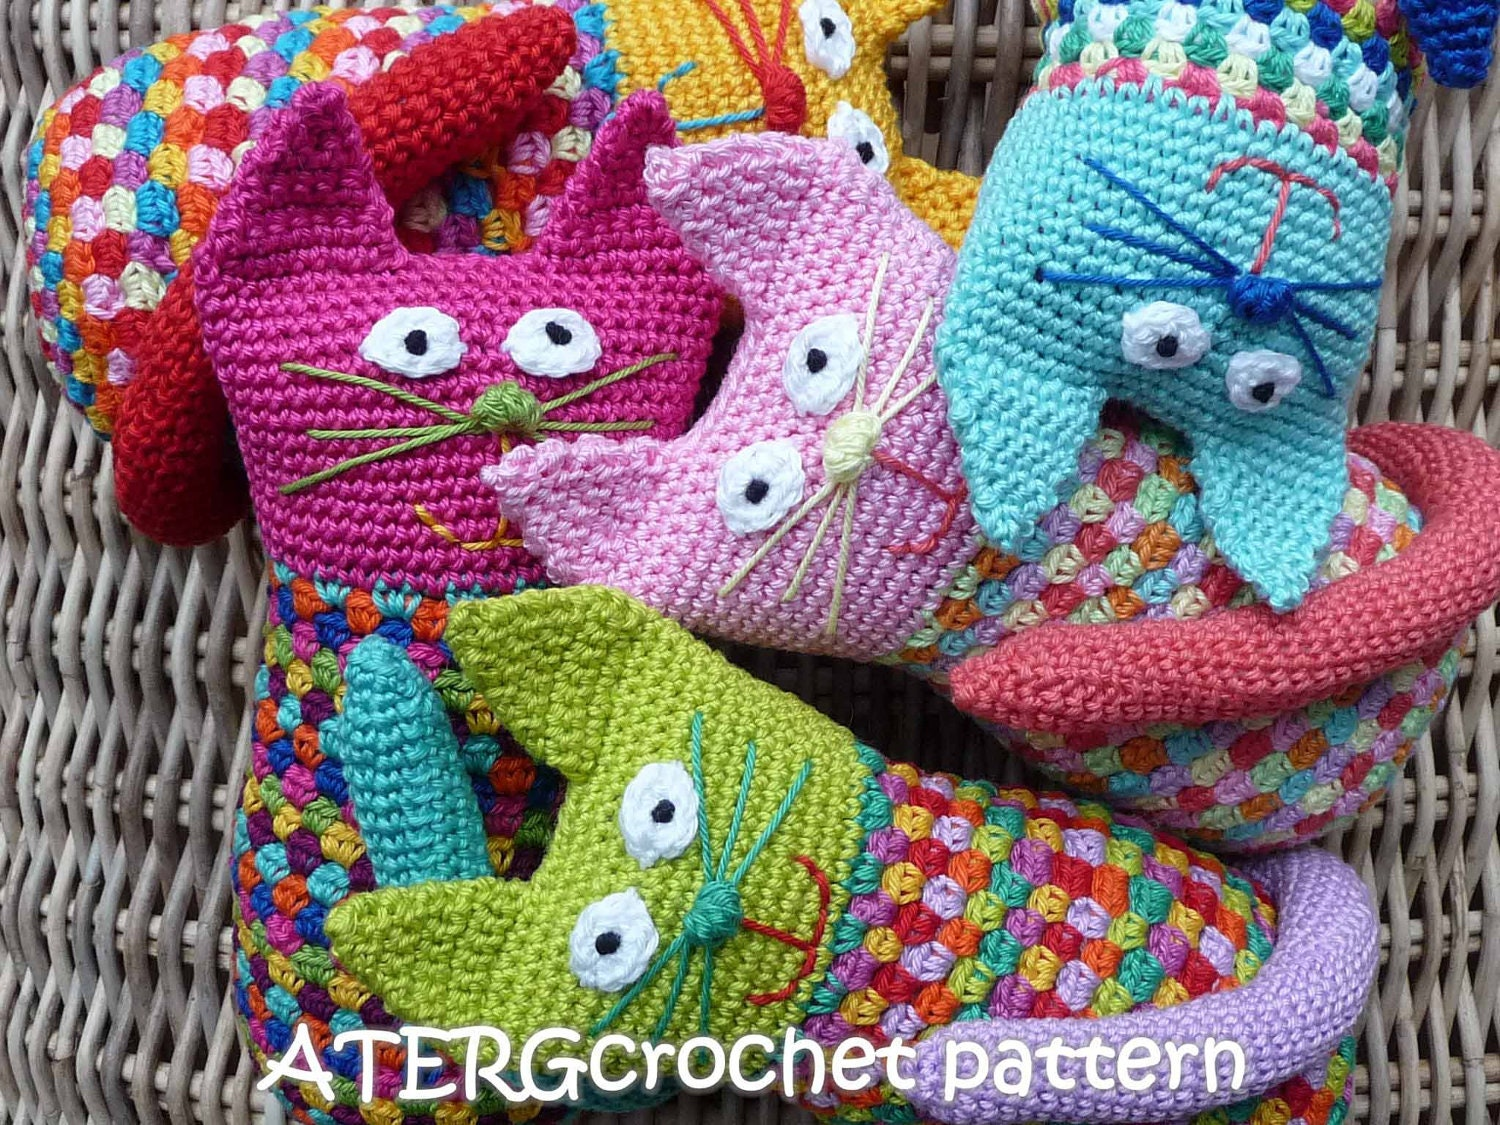 Crochet Patterns Etsy : Crochet pattern cat by ATERGcrochet by ATERGcrochet on Etsy